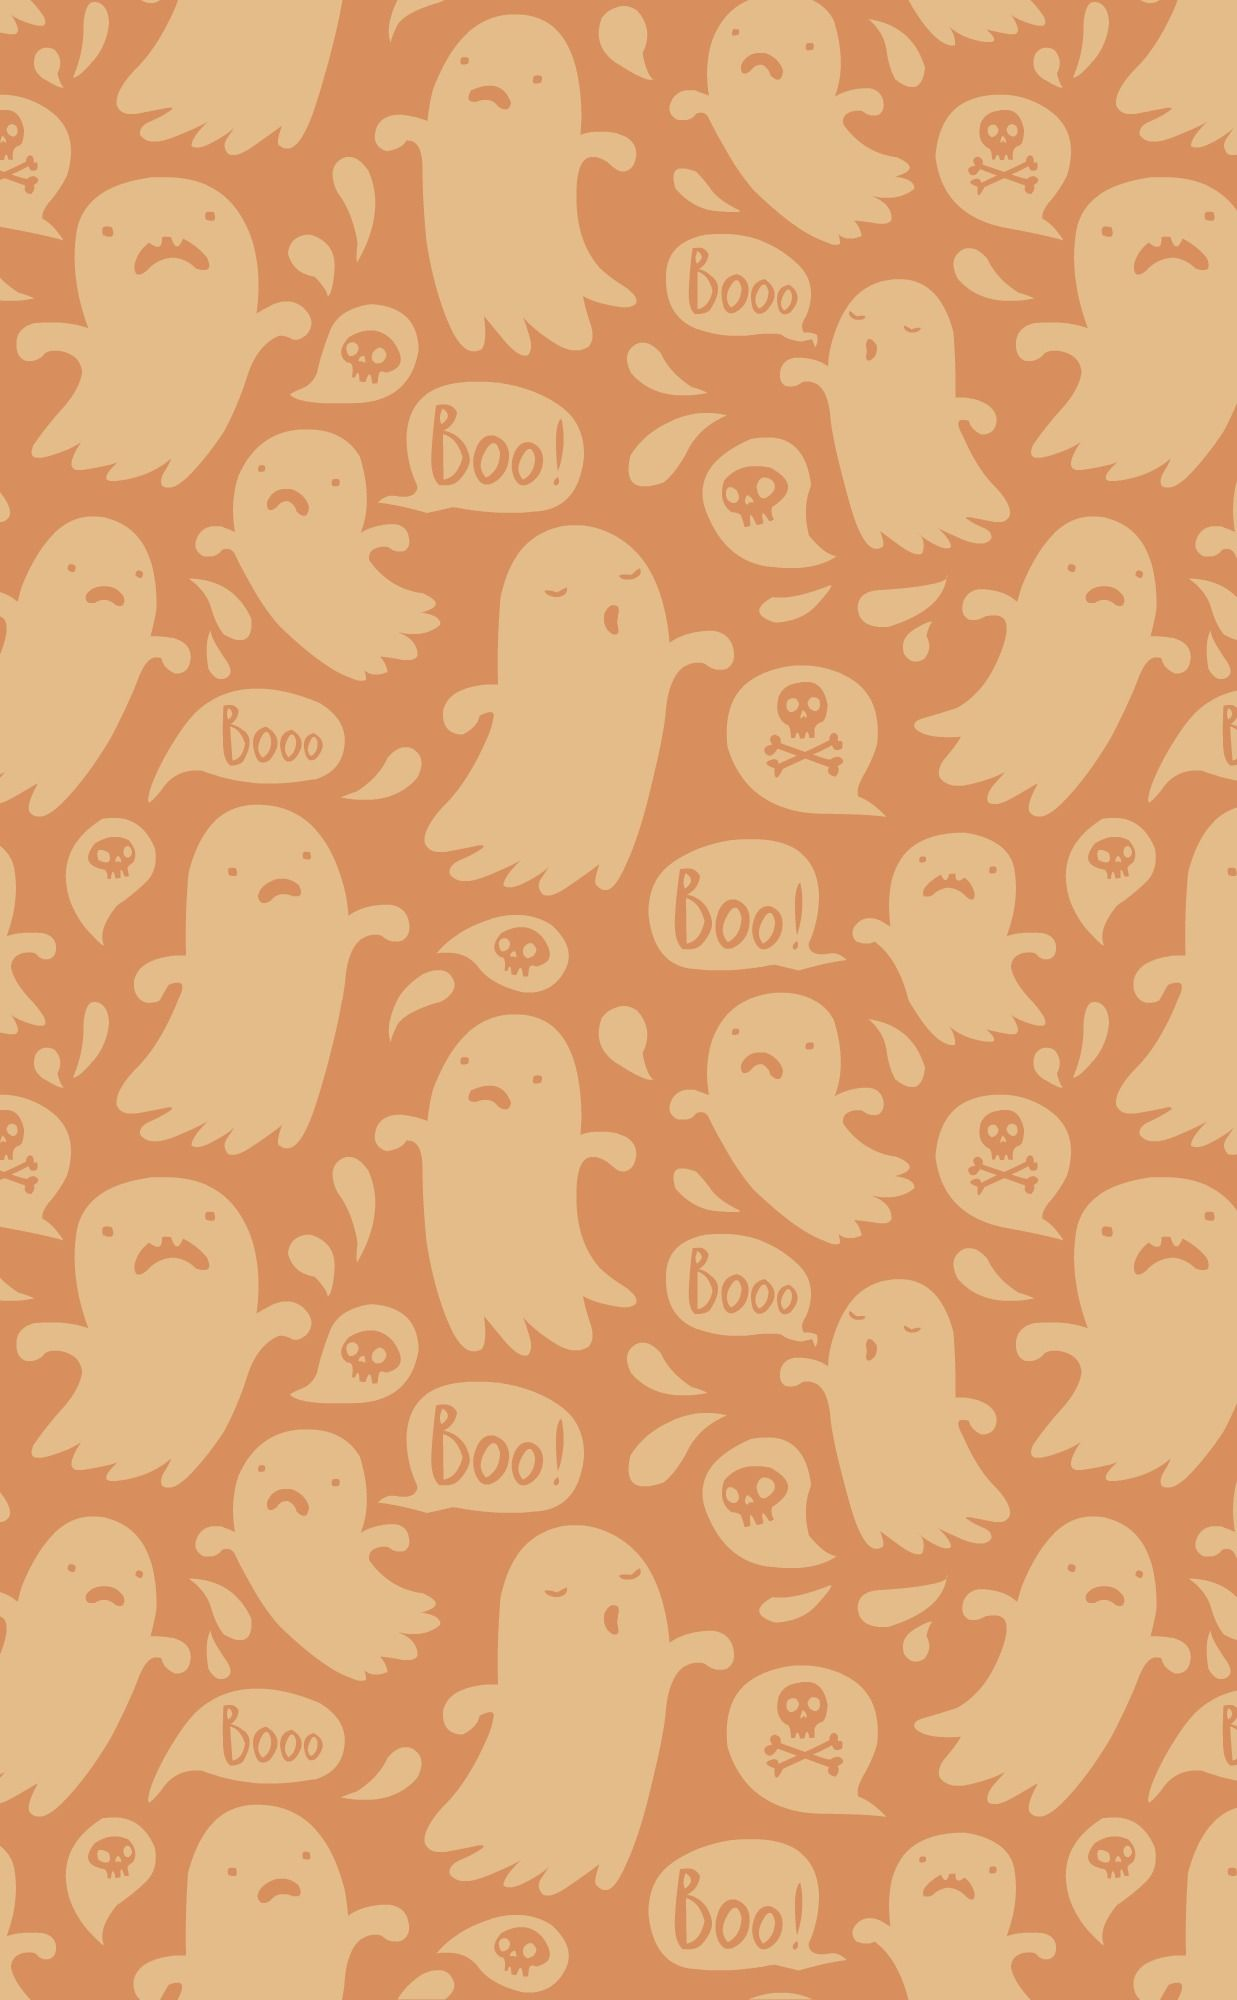 Halloween cell phone background - BOO!   Halloween Cell Phone ...